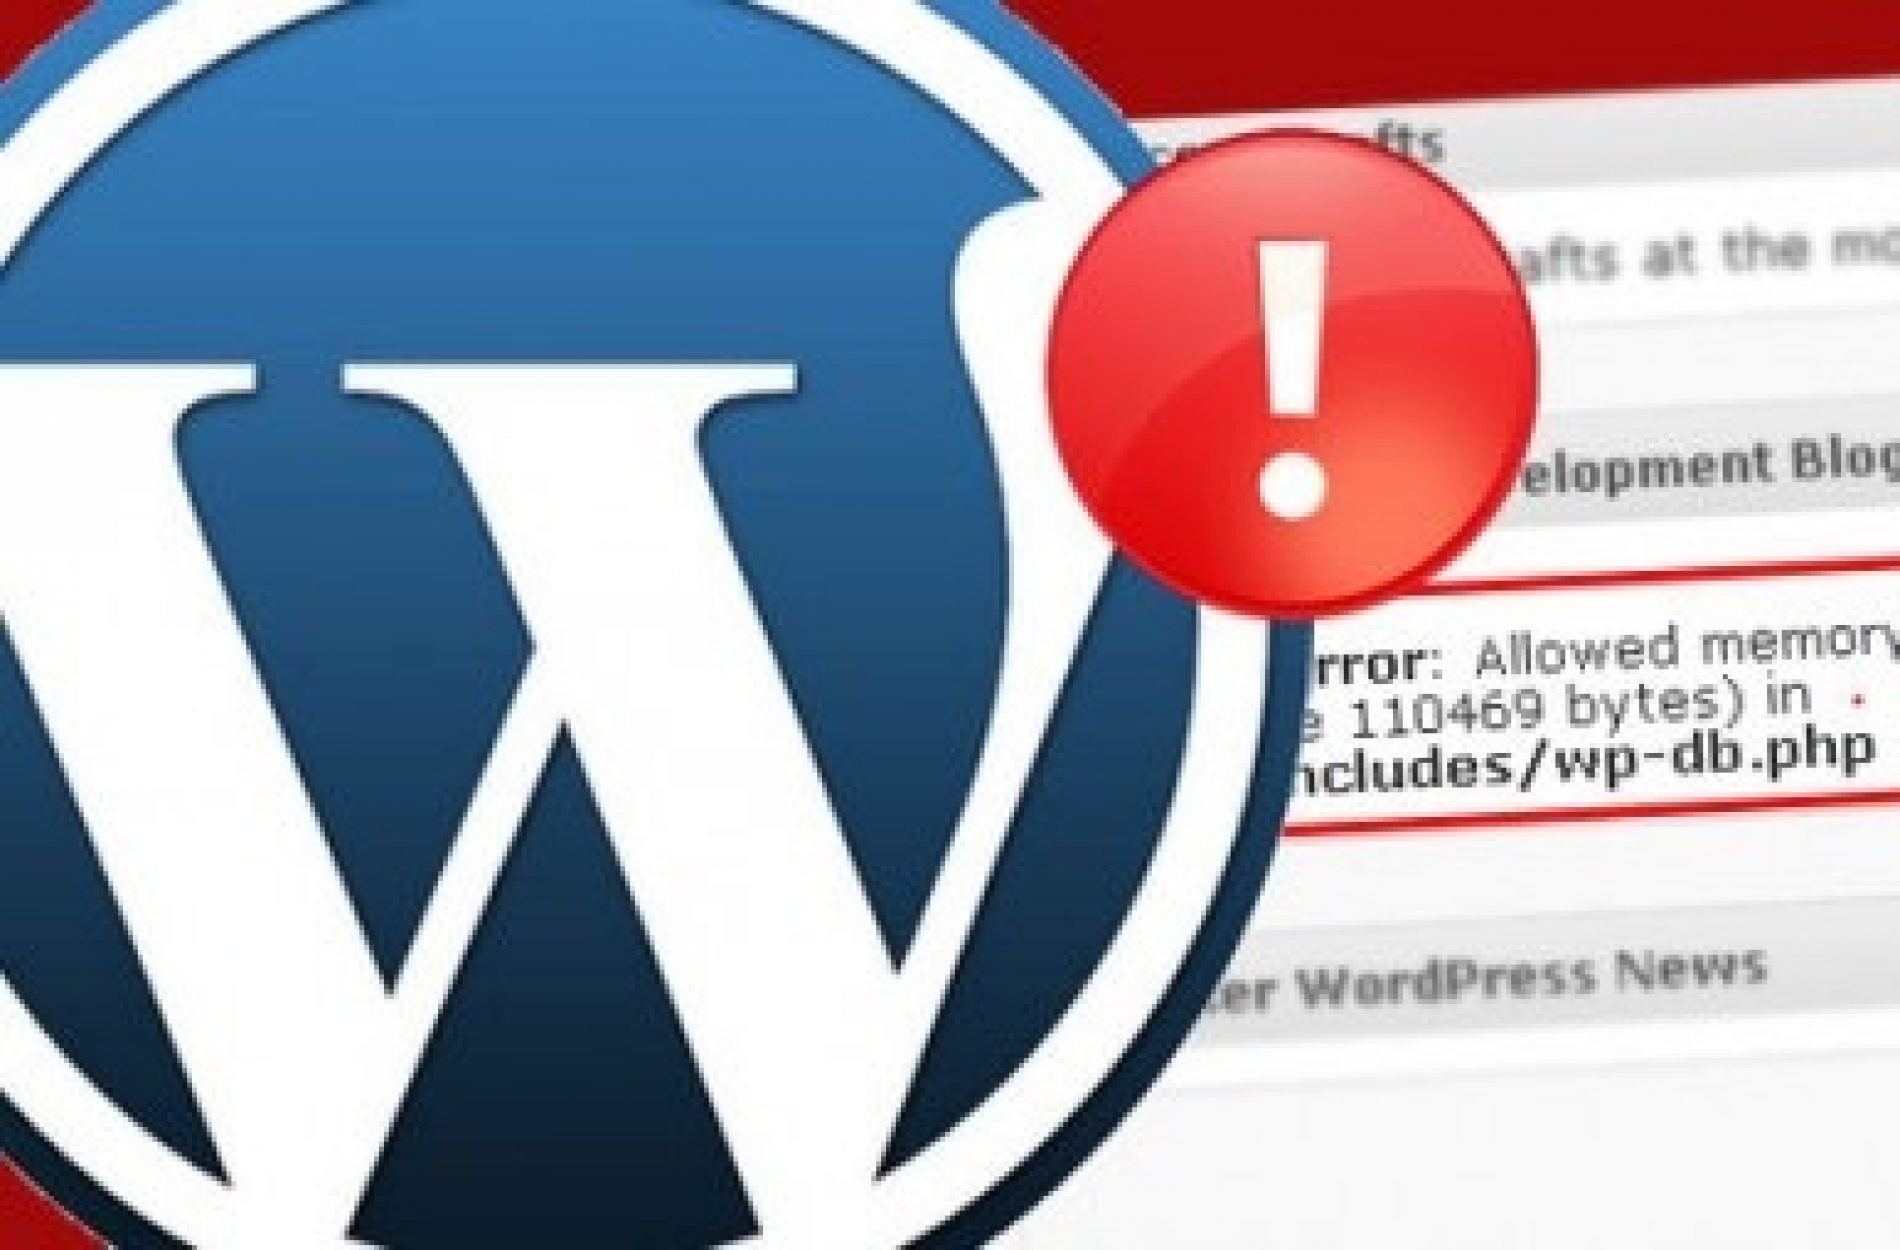 [WordPress] Fatal error: Allowed memory size of 73400320 bytes exhausted